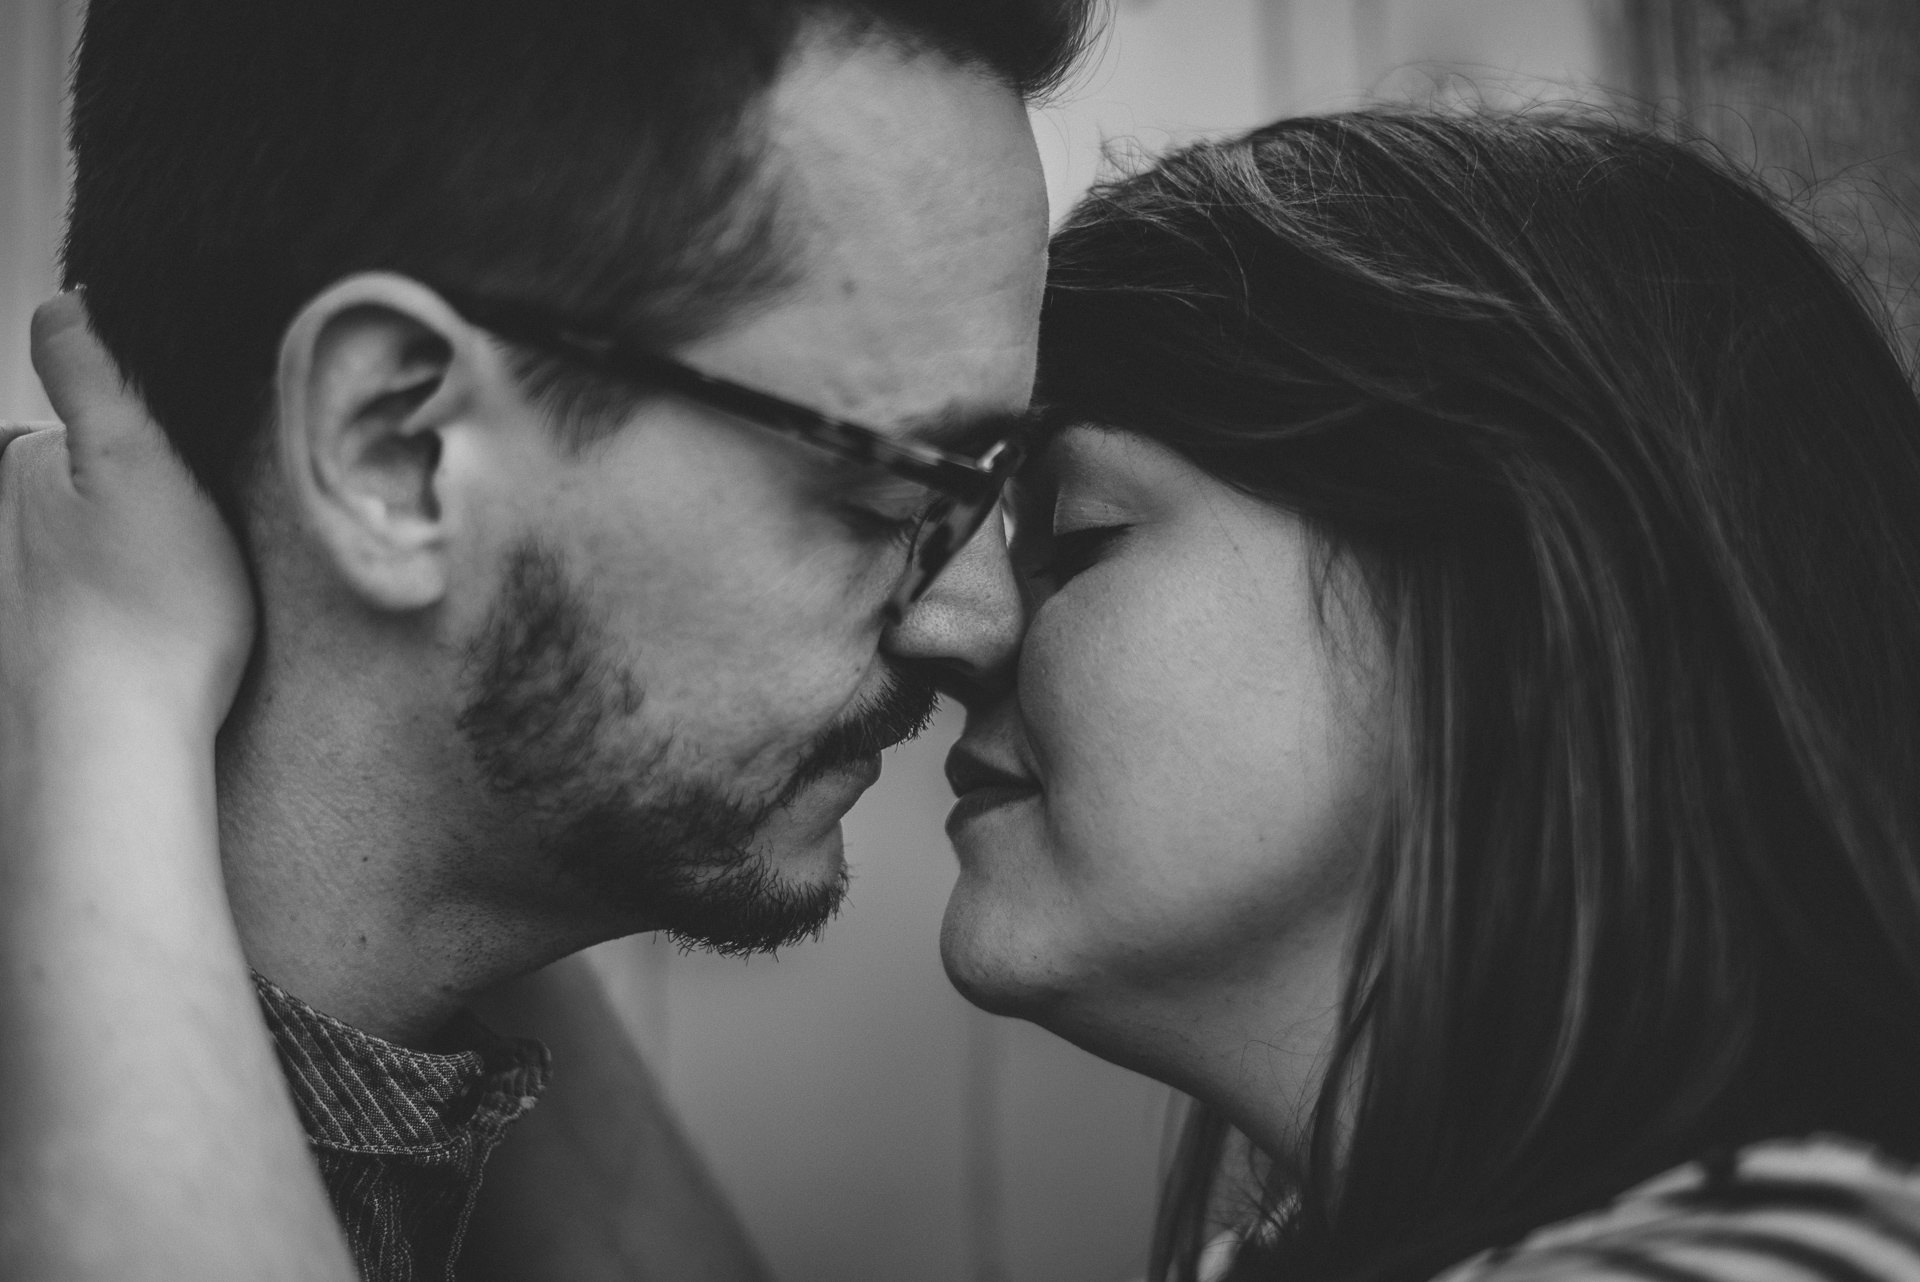 Couple, noses touching, about to kiss. Romantic, creative london engagement shoot ideas